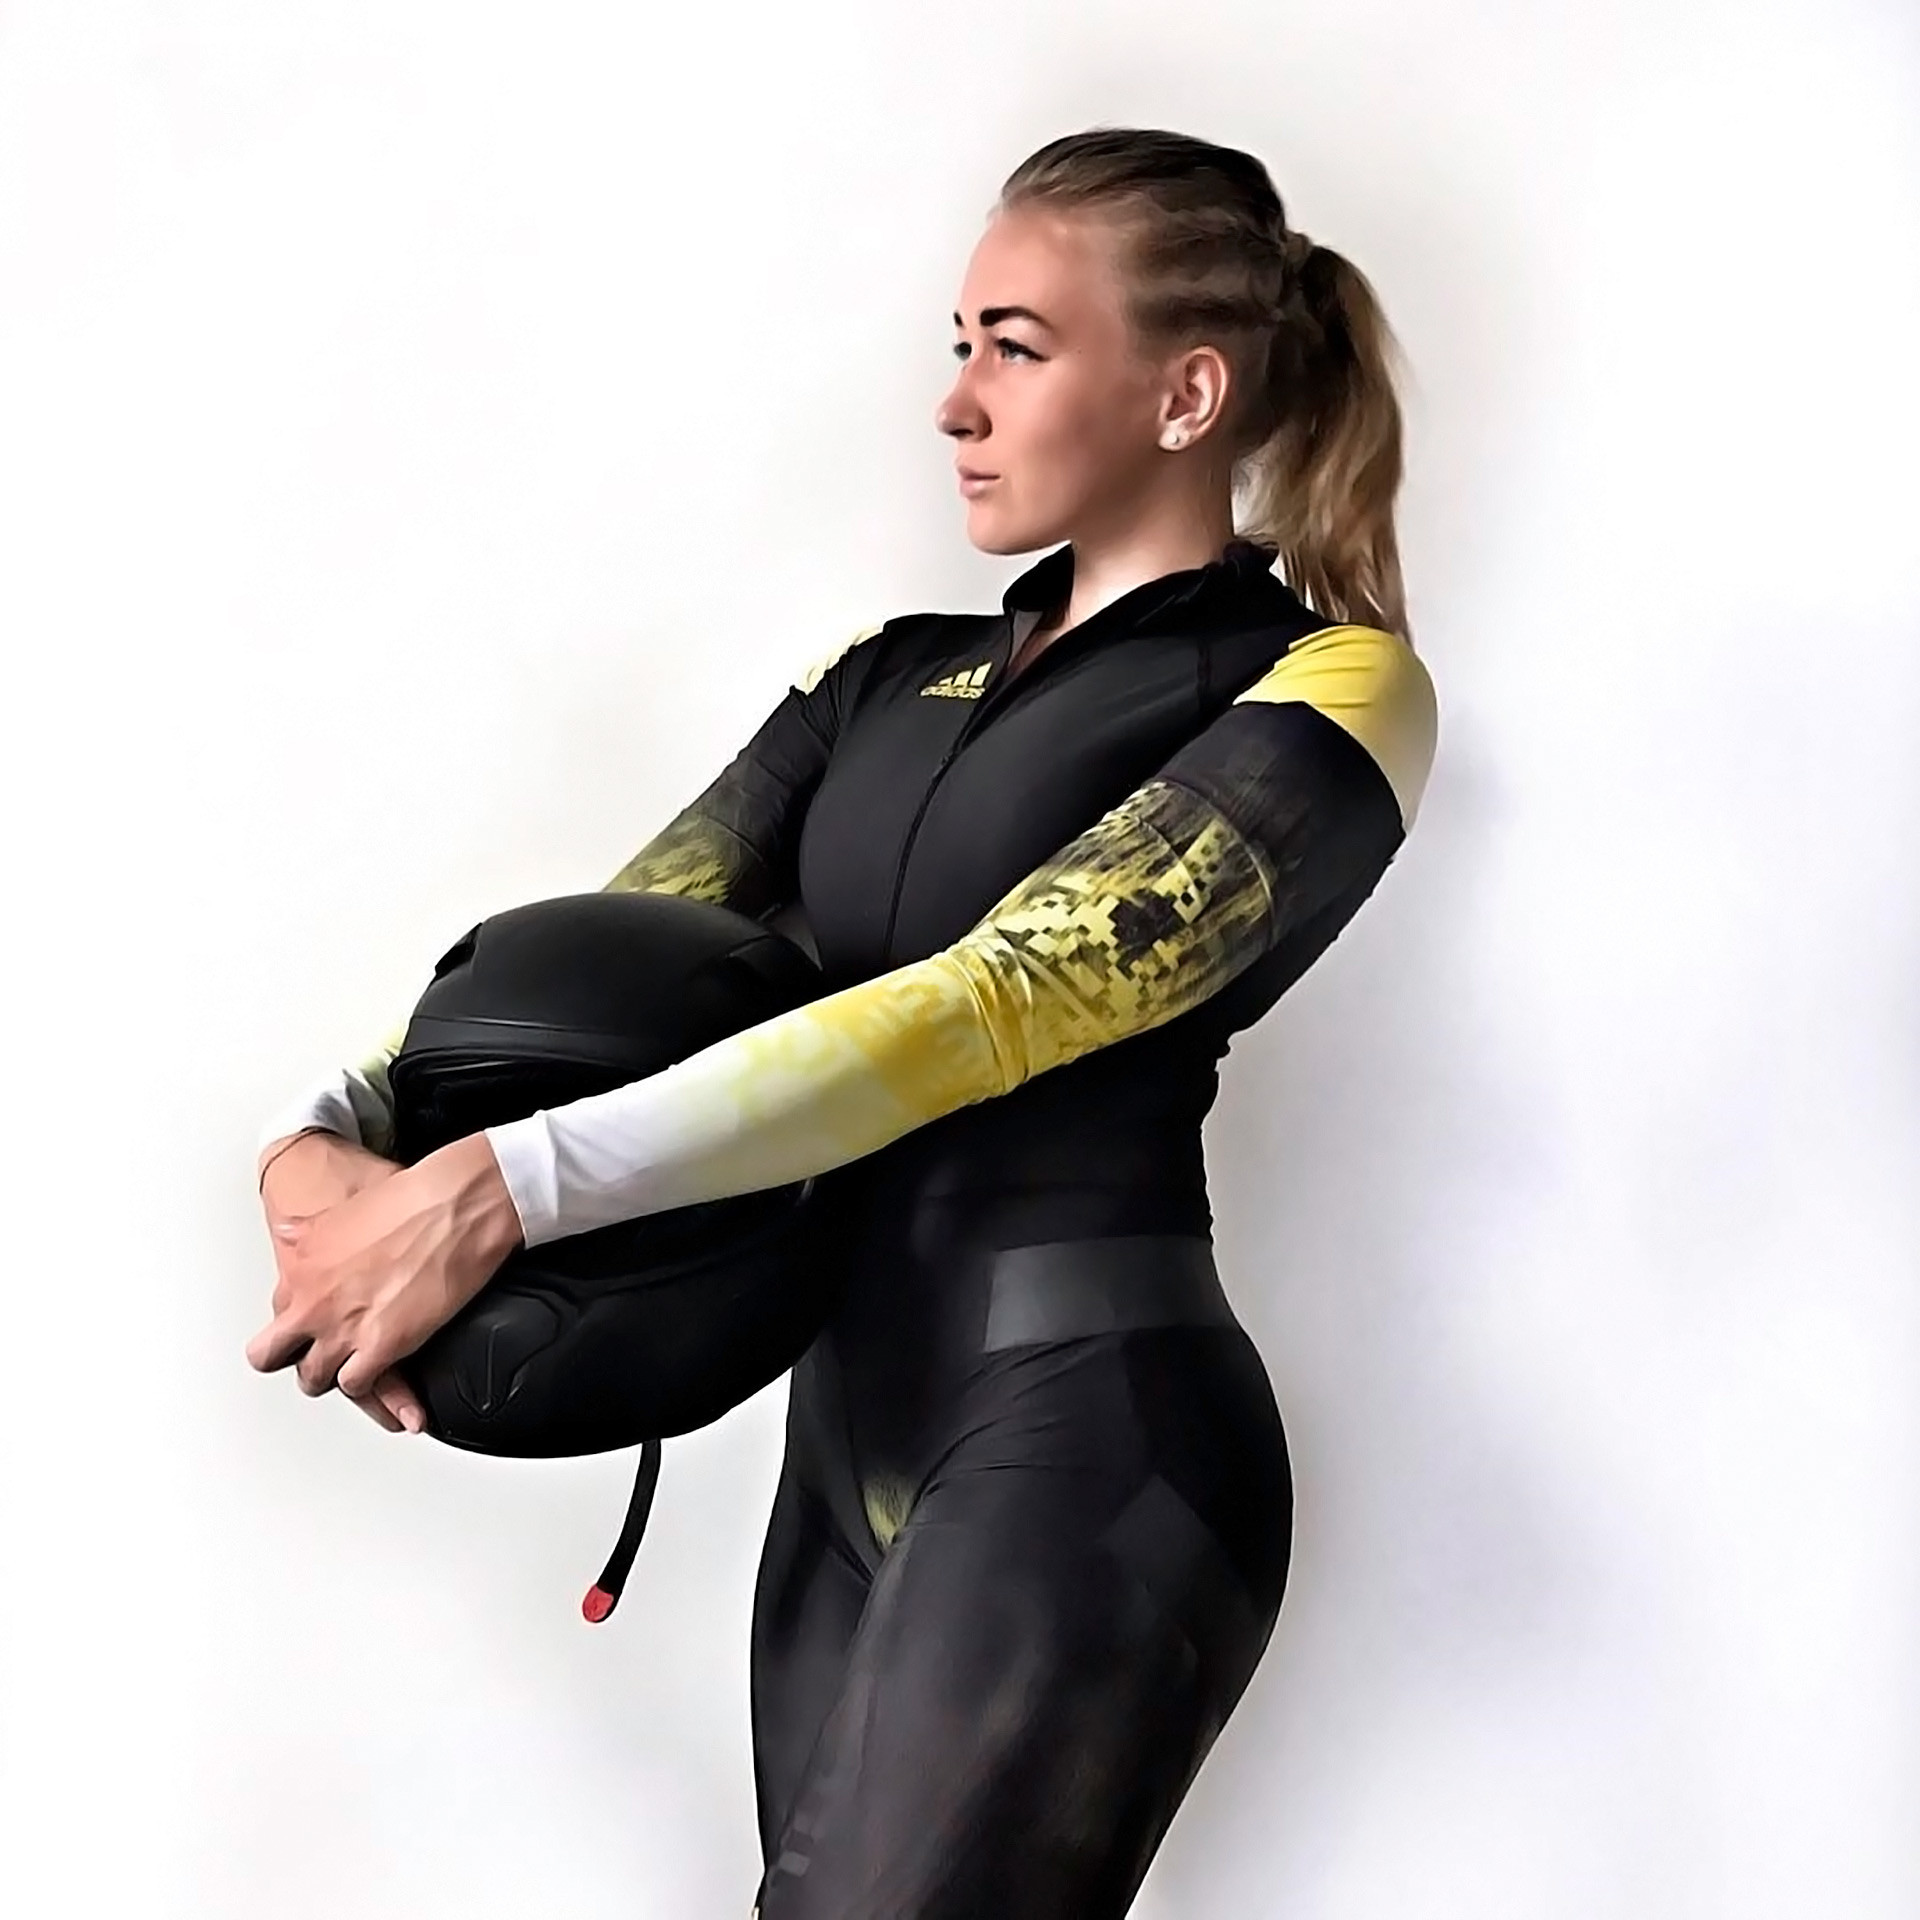 Yulia Belomestnykh, bobsleigh team